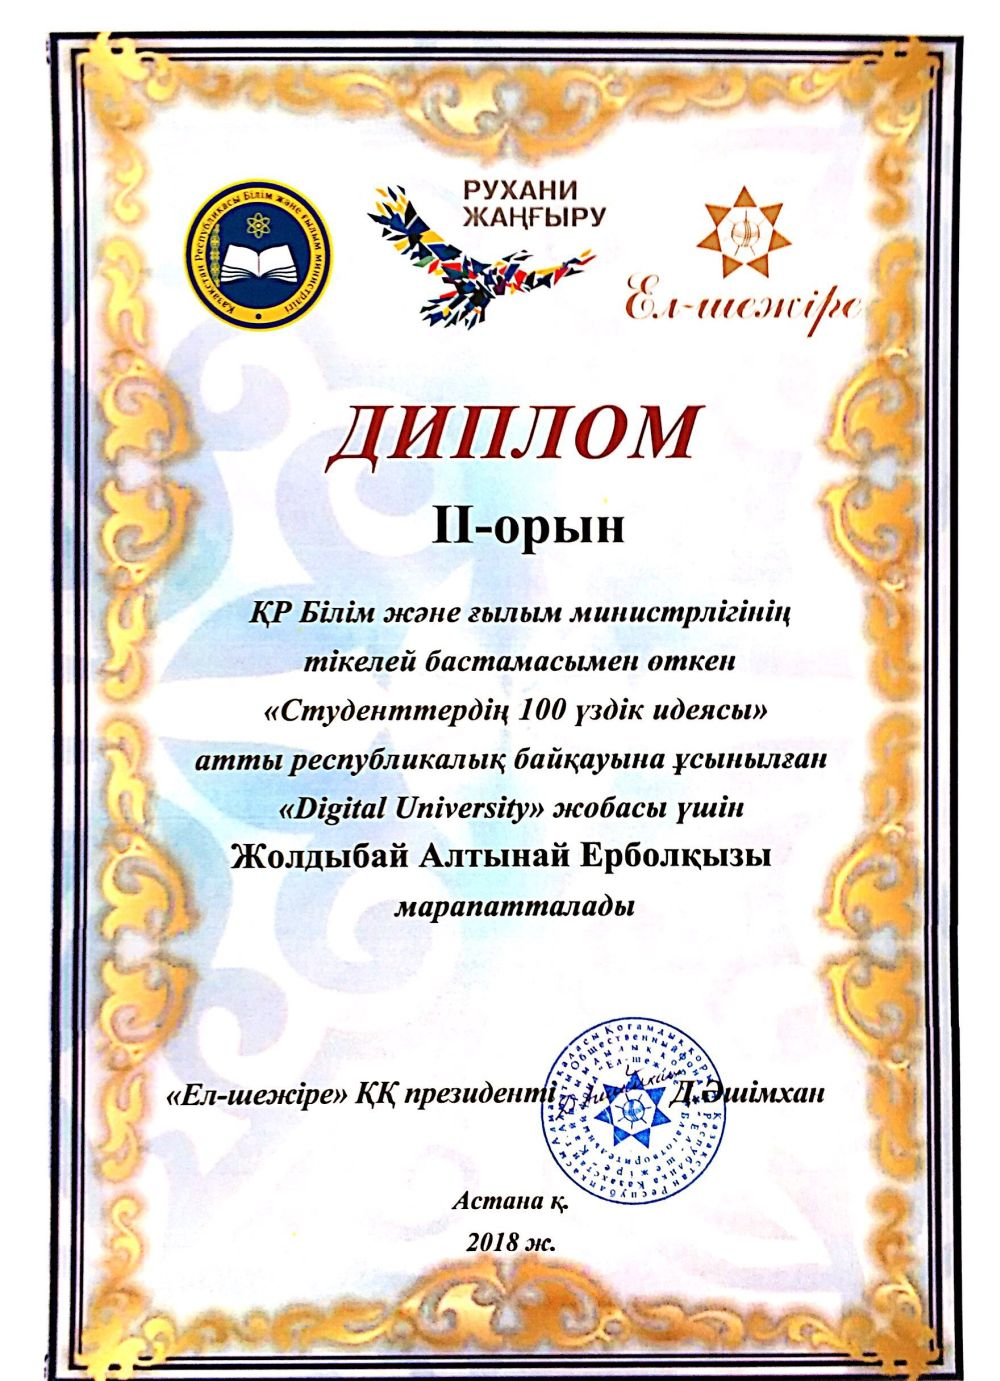 Our student became the winners of the republican competition